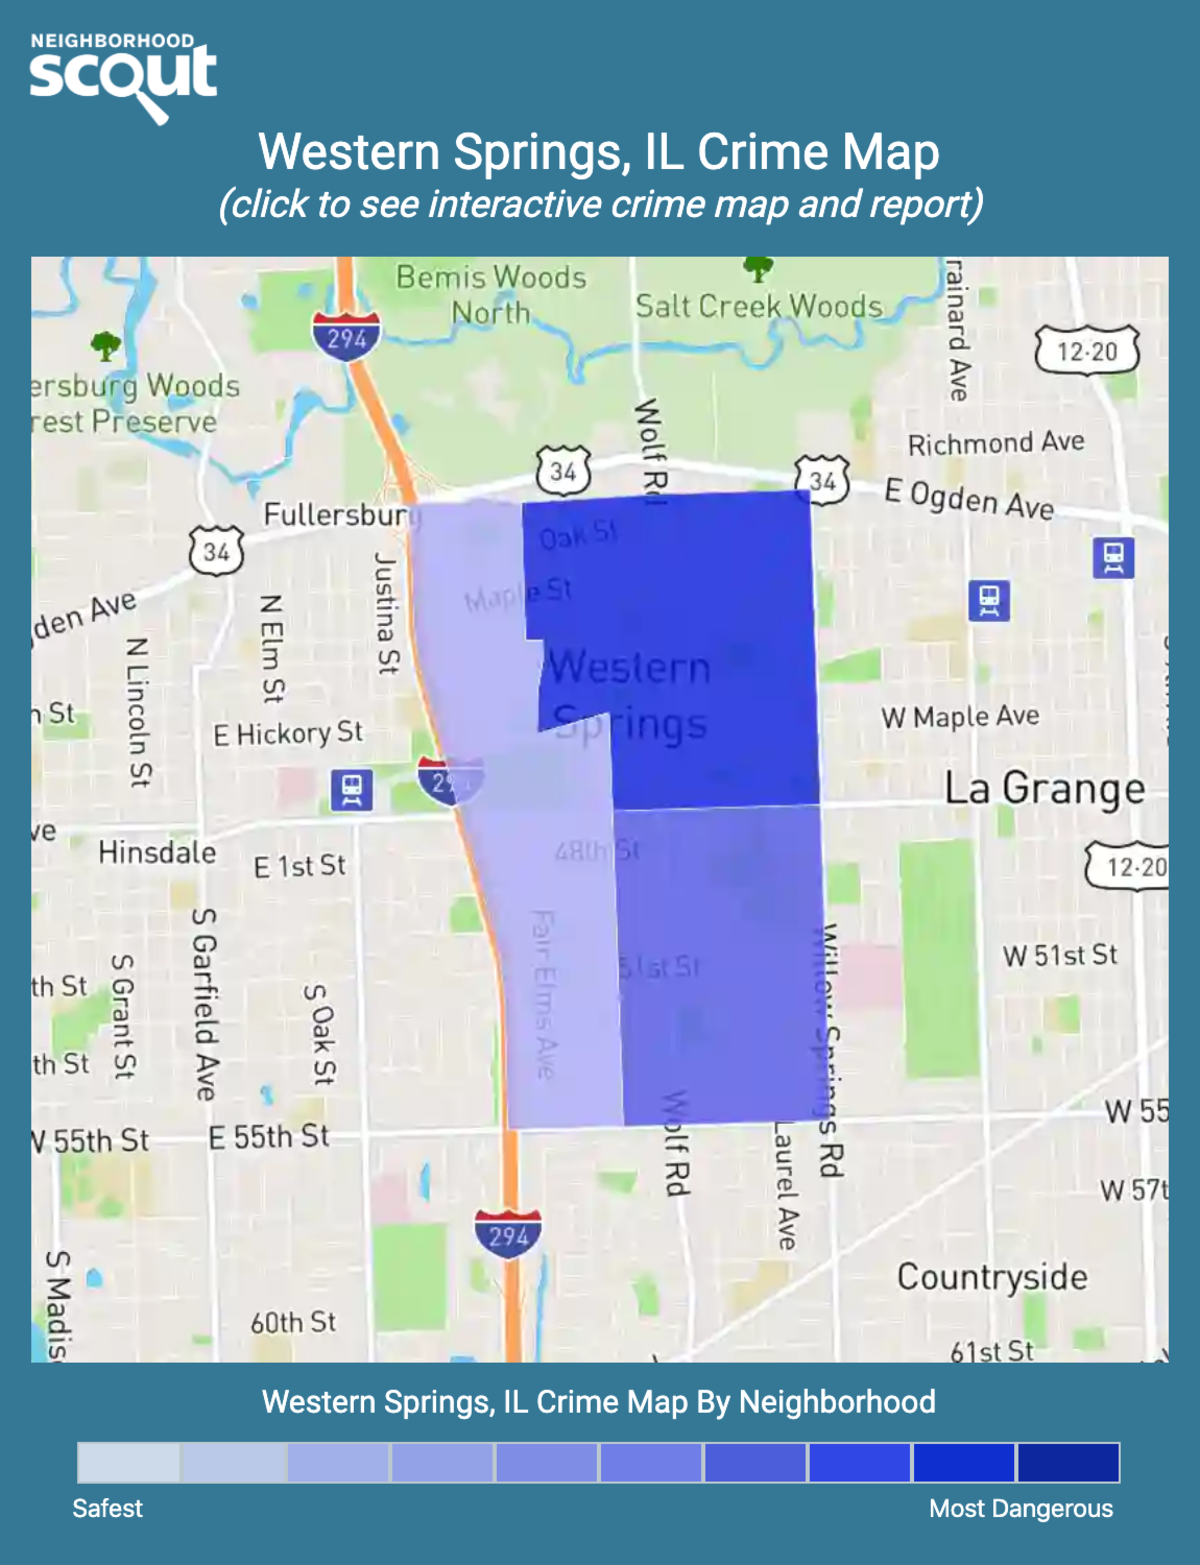 Western Springs, Illinois crime map